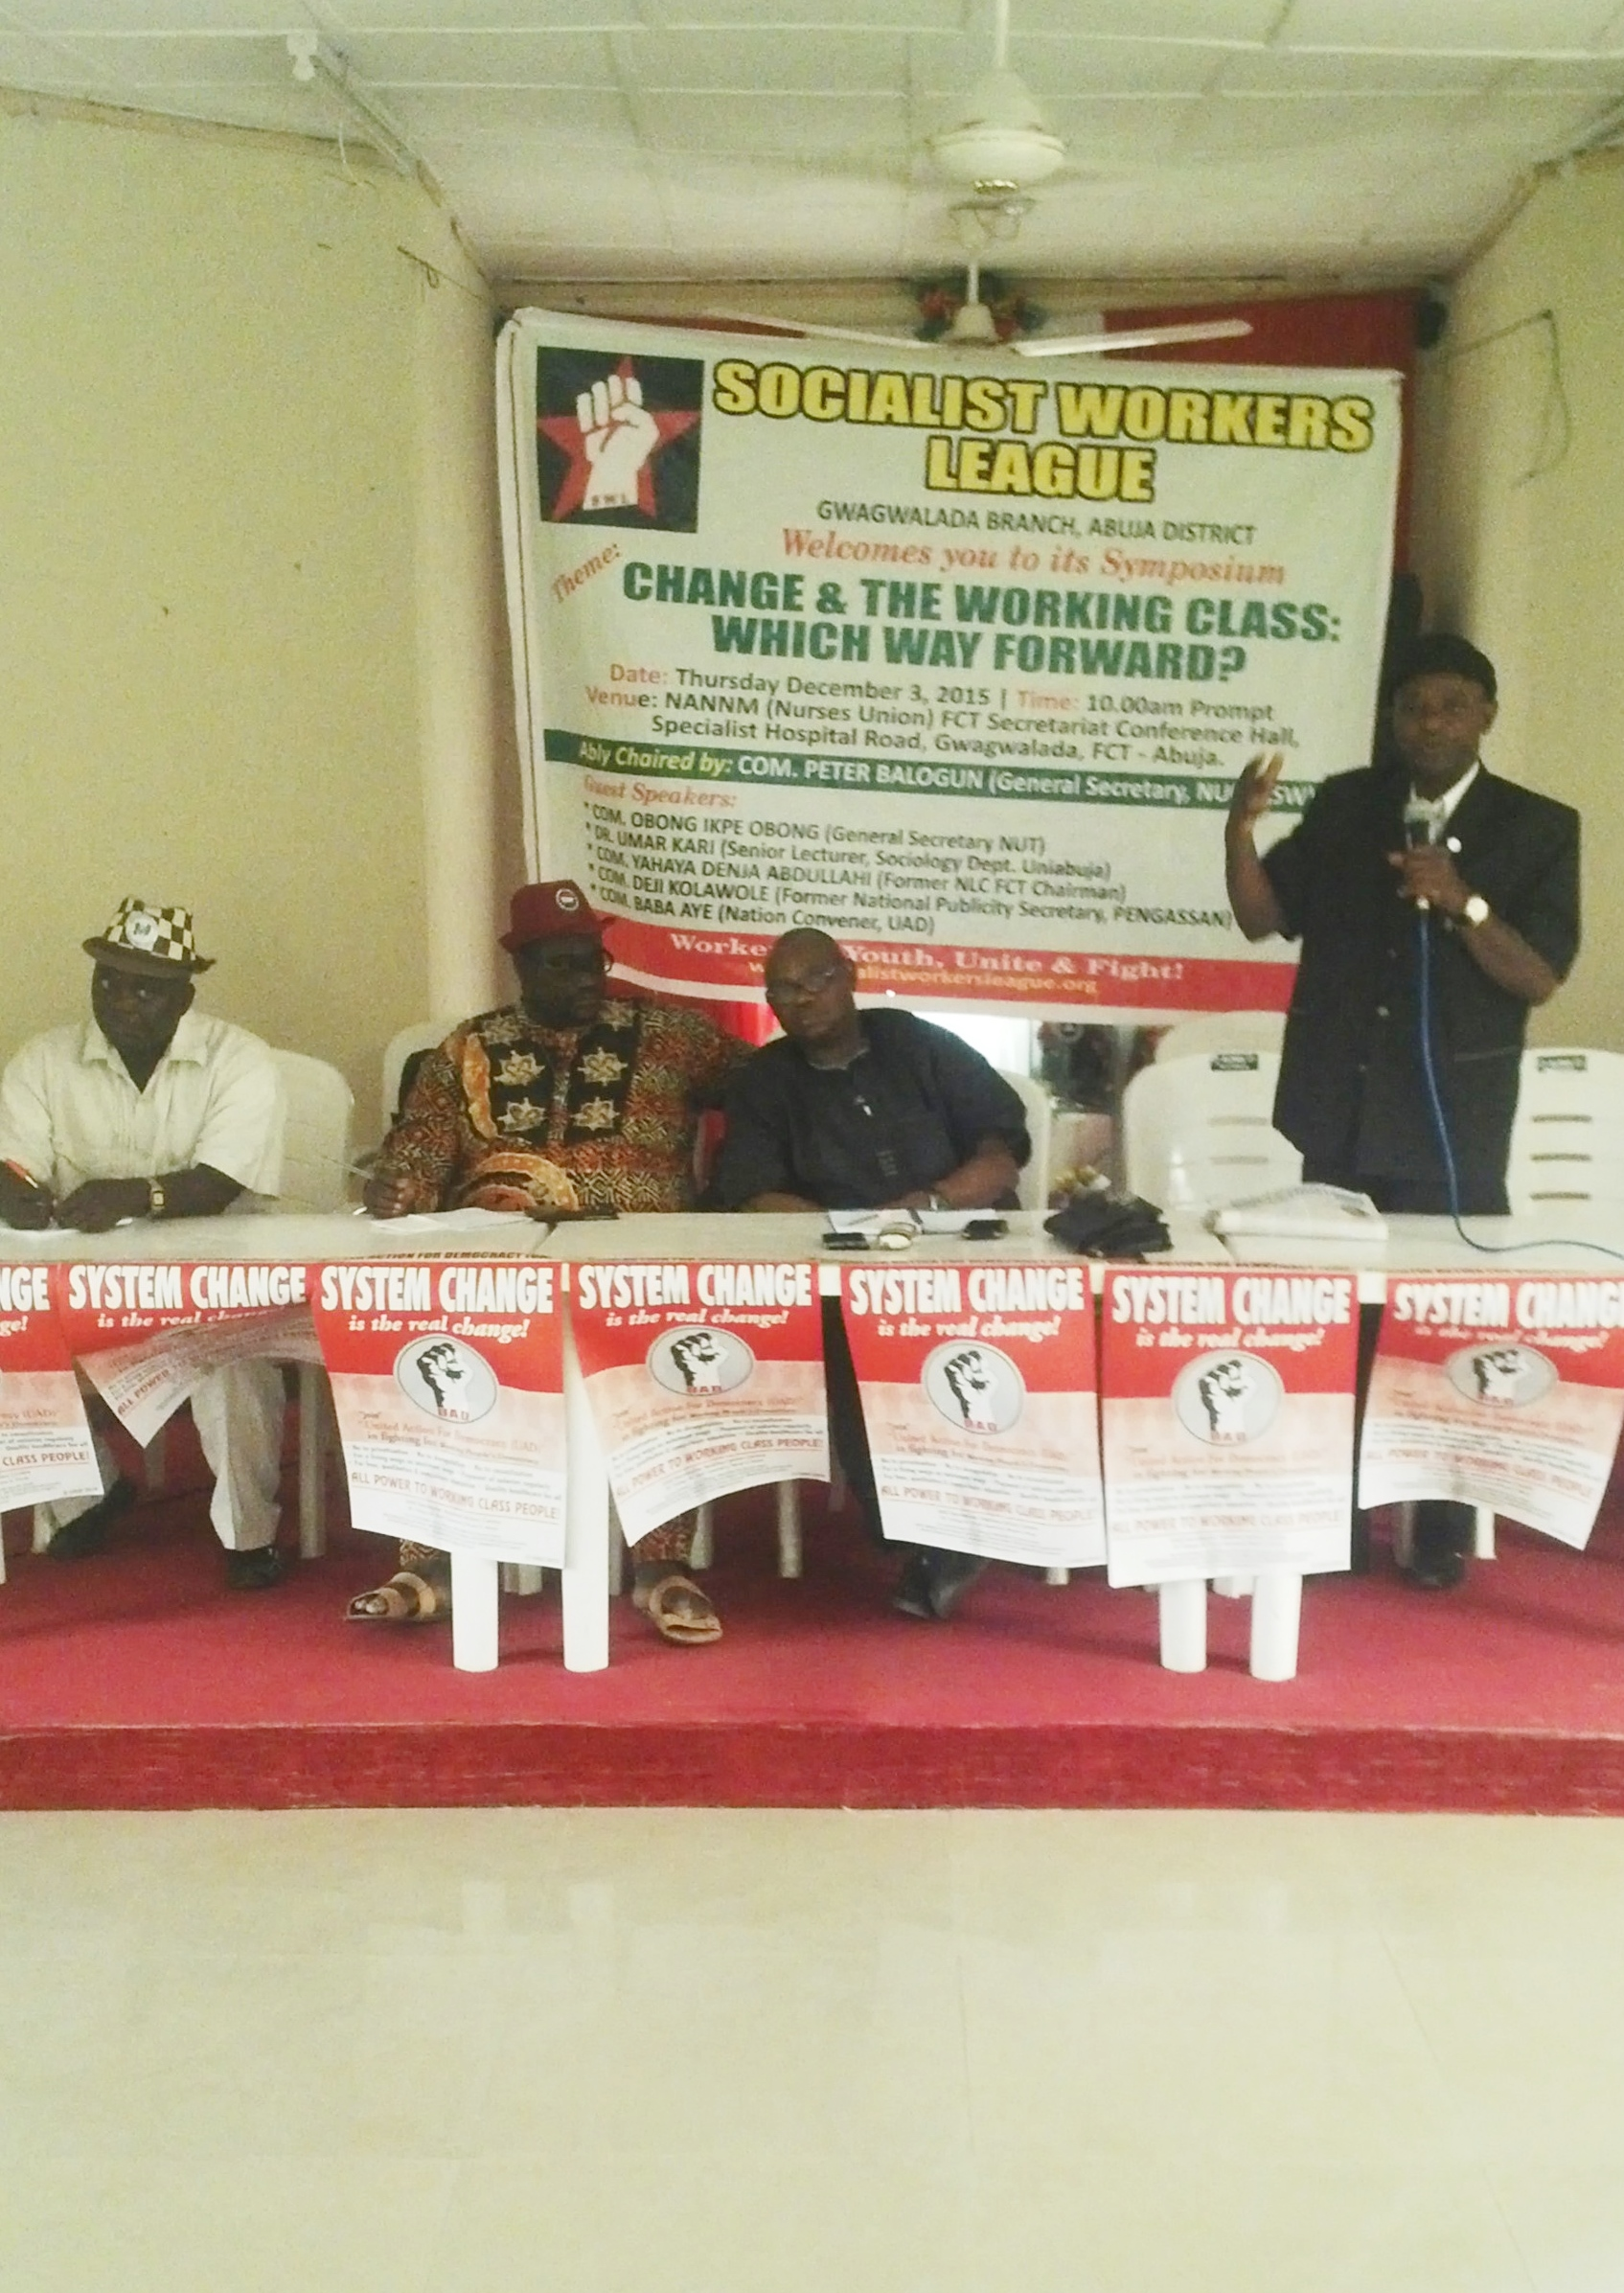 Com Abdullahi Denja Yahaya addressing comrades at the symposium